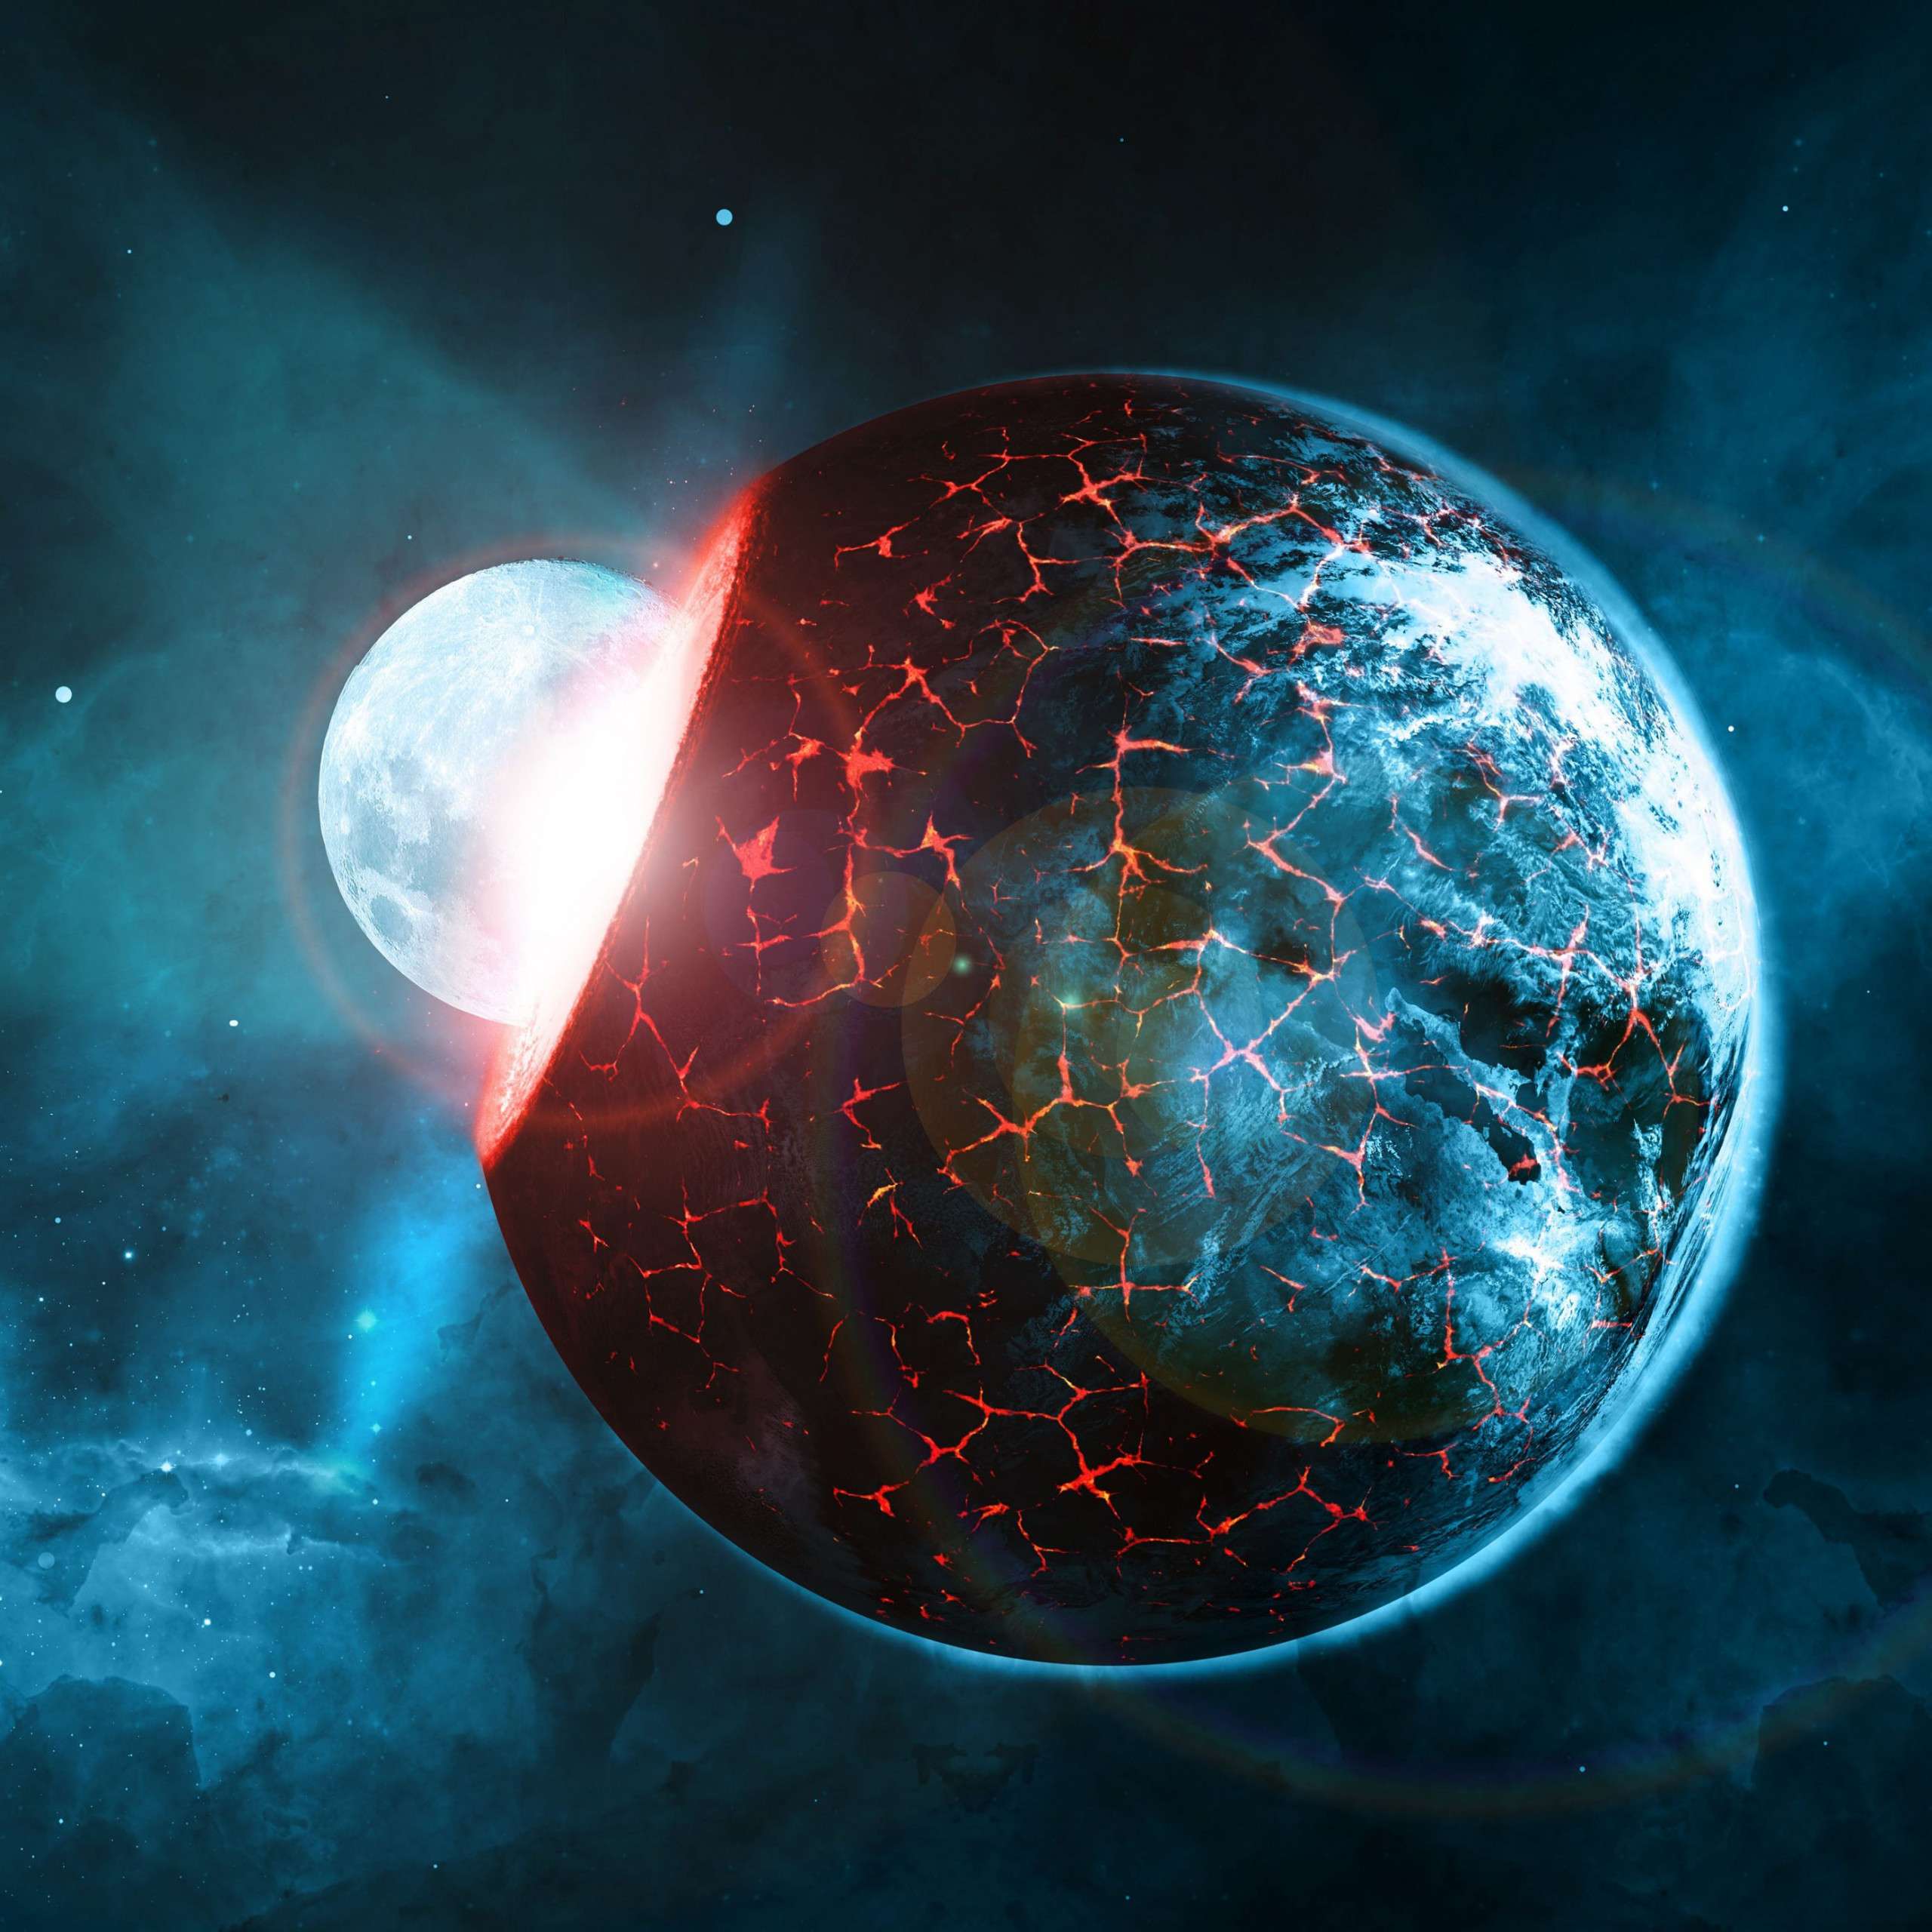 planets space blue red collision stars 4k wallpaper